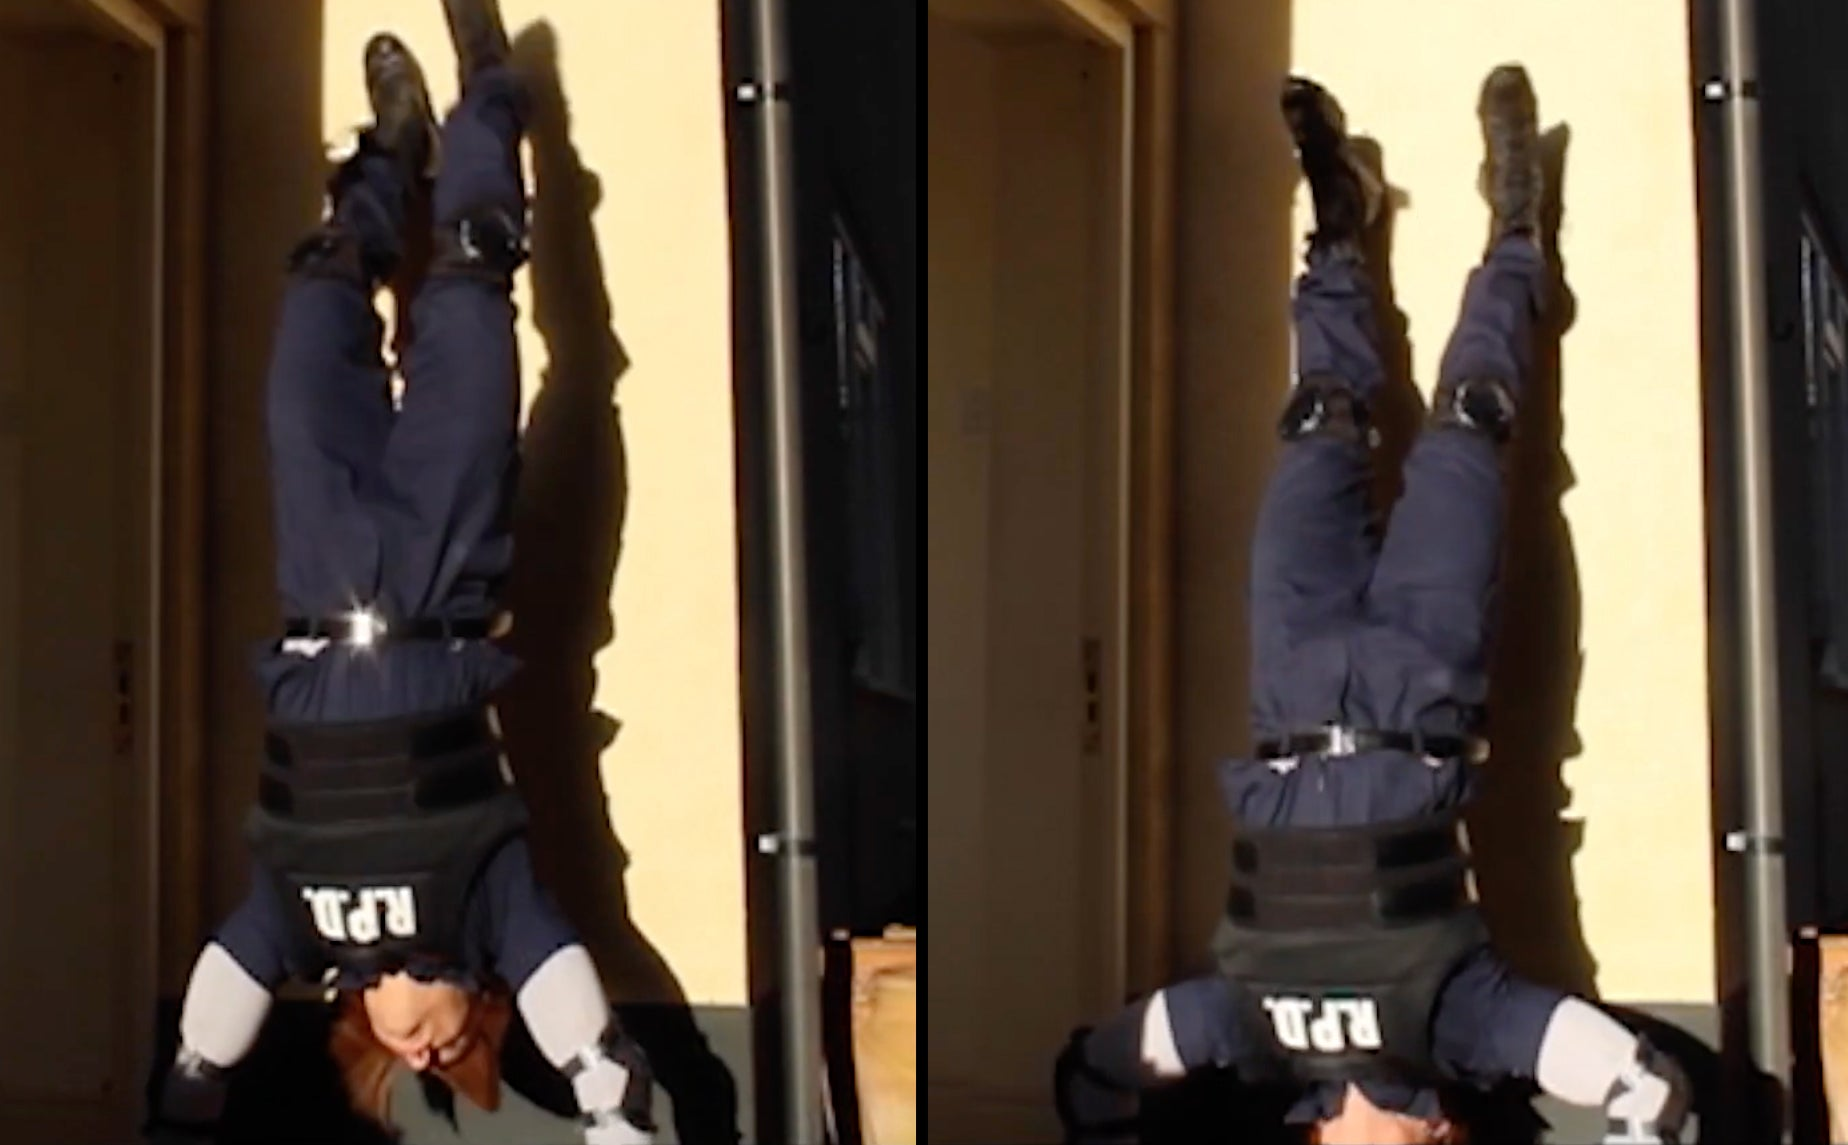 Leon S. Kennedy Resident Evil 2 Remake cosplay teaching the handstand push up for a raccoon city fitness workout